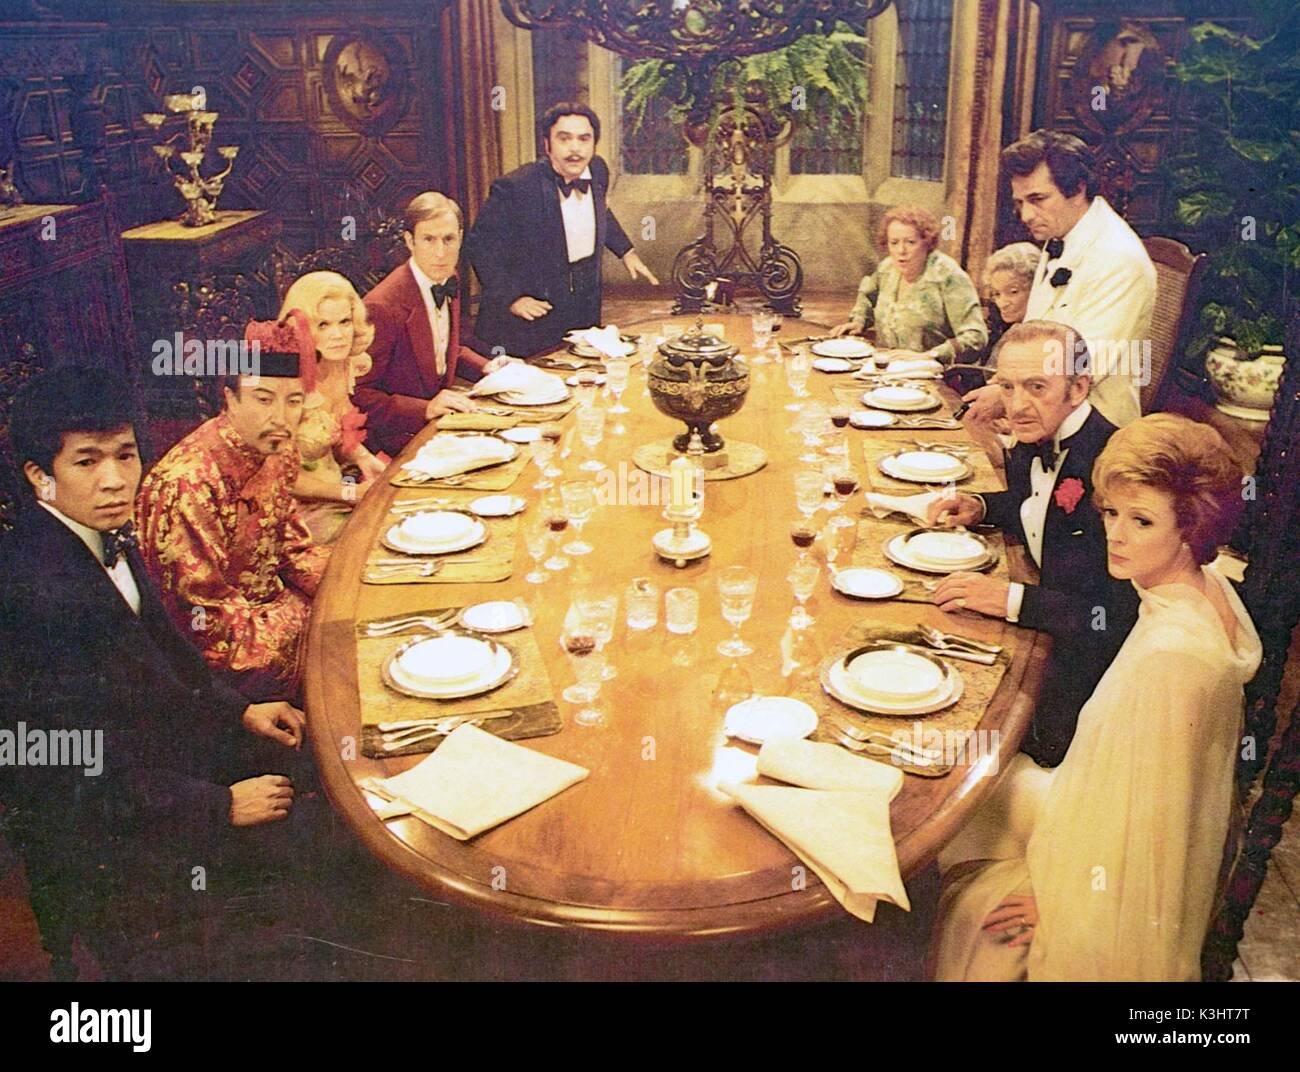 MURDER BY DEATH L-R RICHARD NARITA, PETER SELLERS, EILEEN BRENNAN, JAMES CROMWELL, JAMES COCO, ELSA LANCHESTER,ESTELLE WINWOOD, PETER FALK, DAVID NIVEN, MAGGIE SMITH - Stock Image